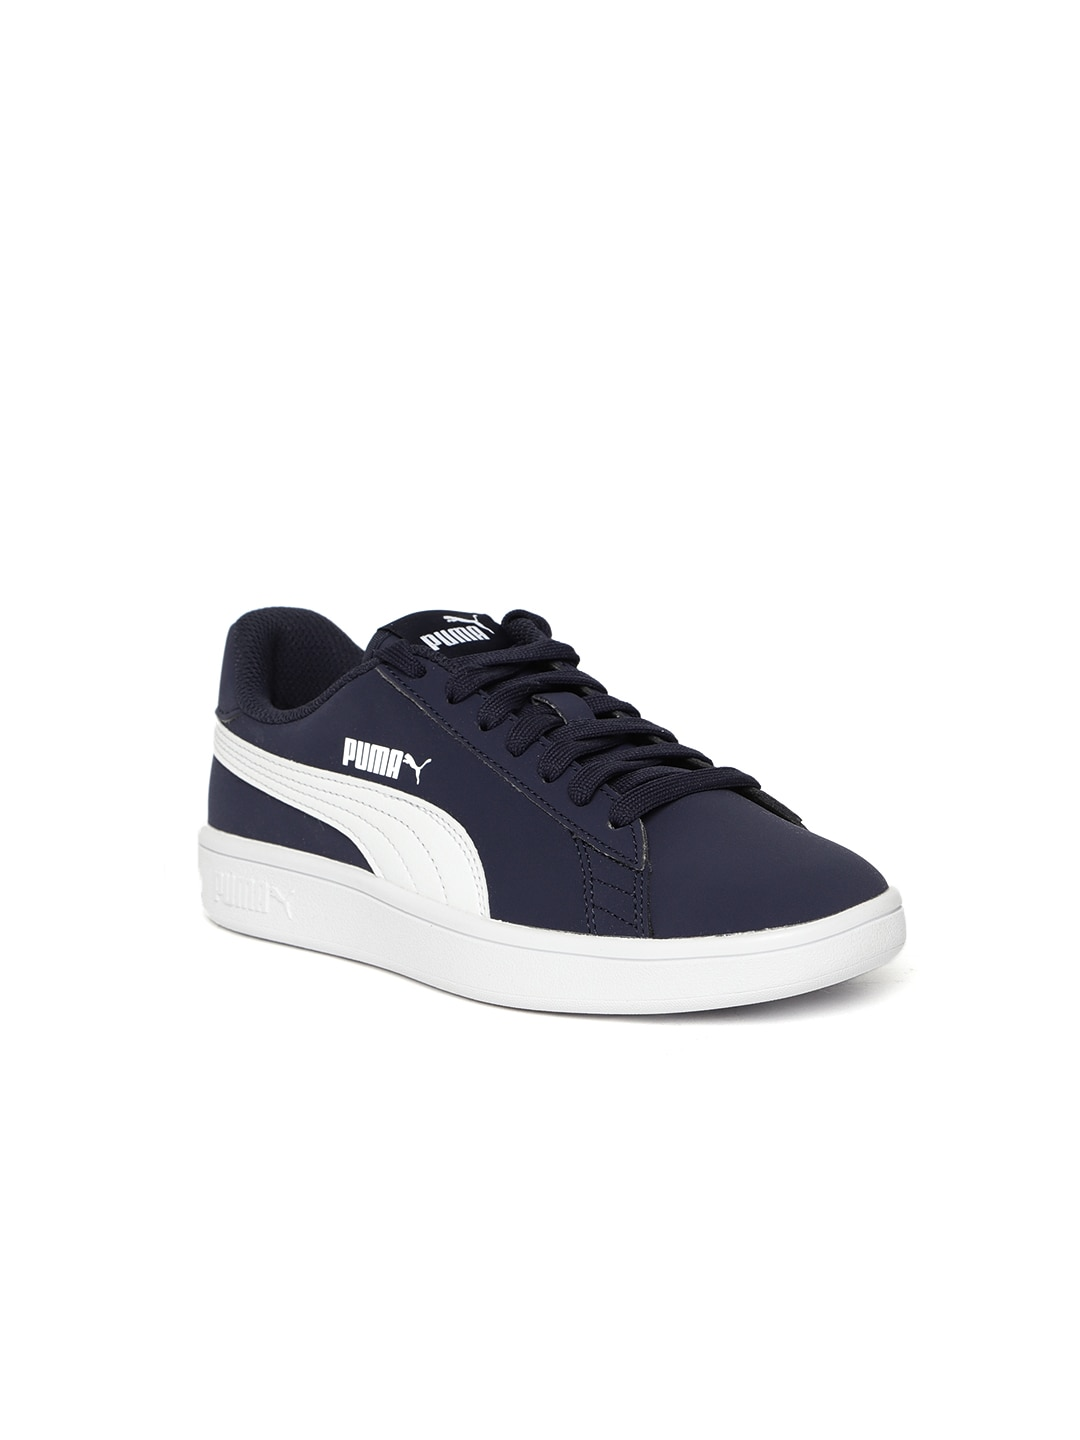 3127c73891b Casual Shoes For Men - Buy Casual   Flat Shoes For Men